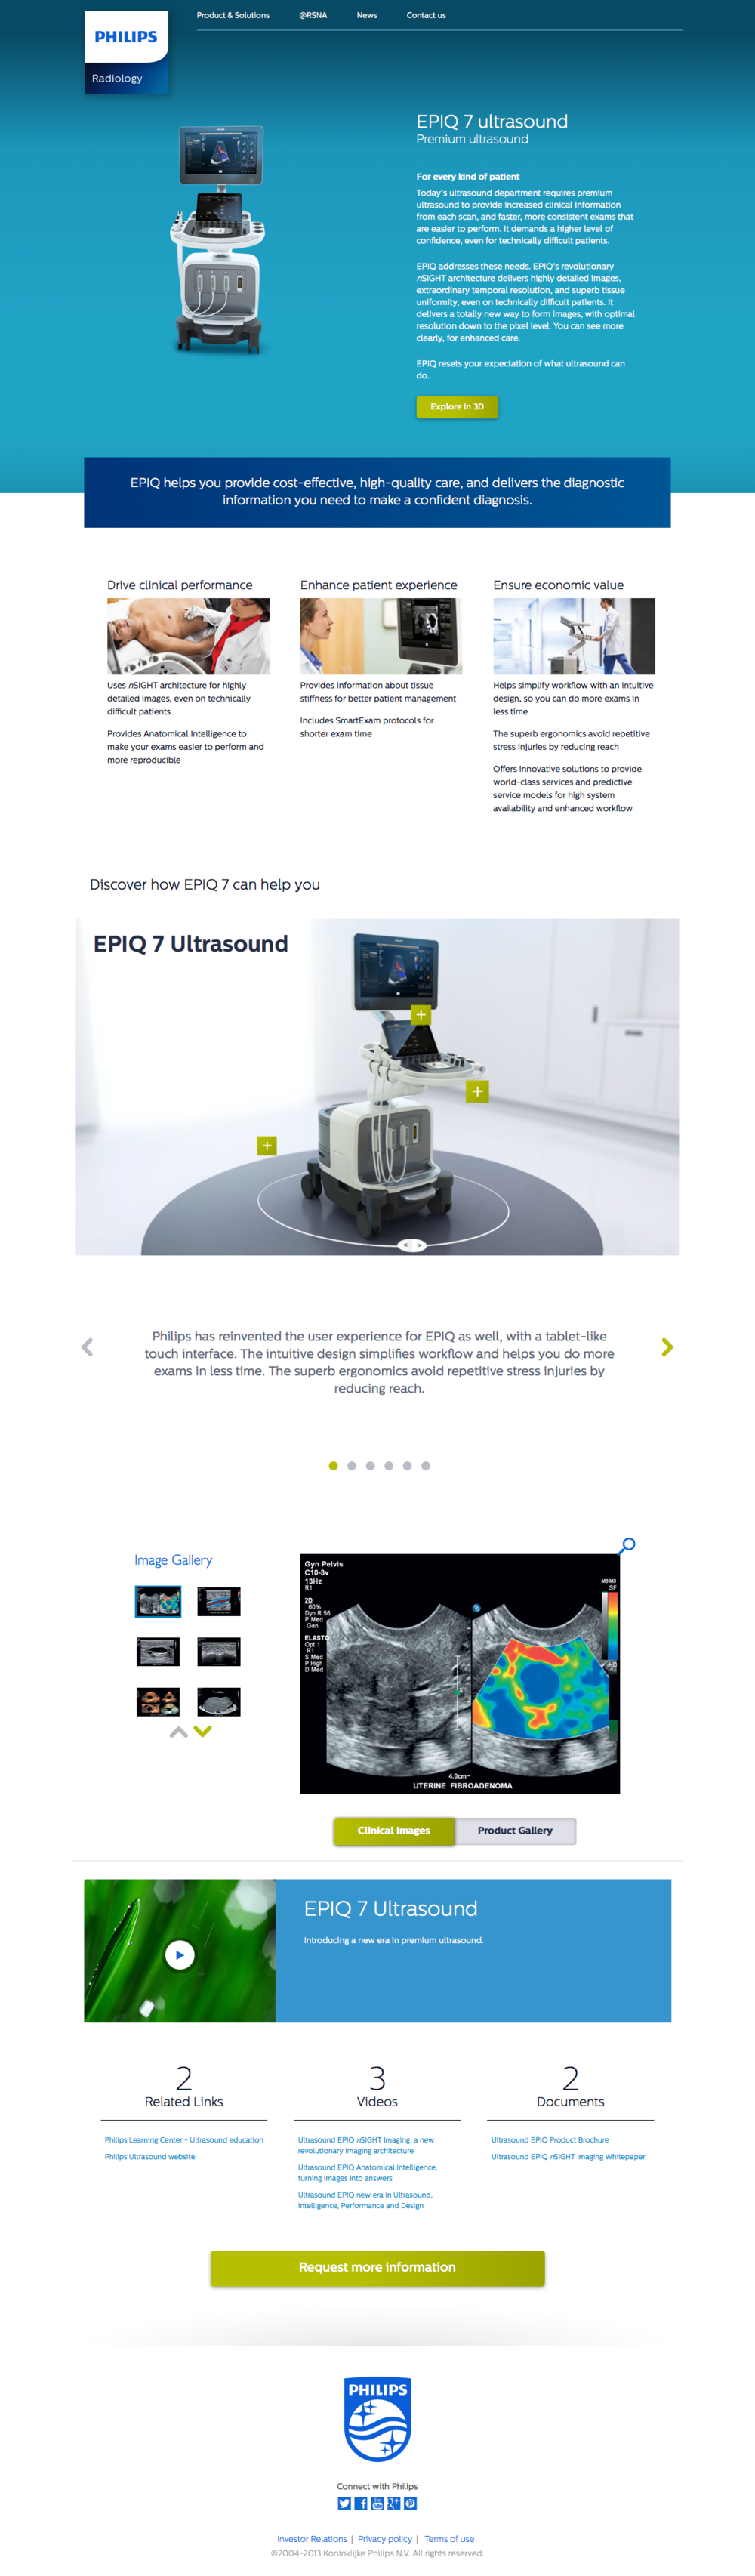 Philips_Healthcare-EPIQ7-ultrasound.png